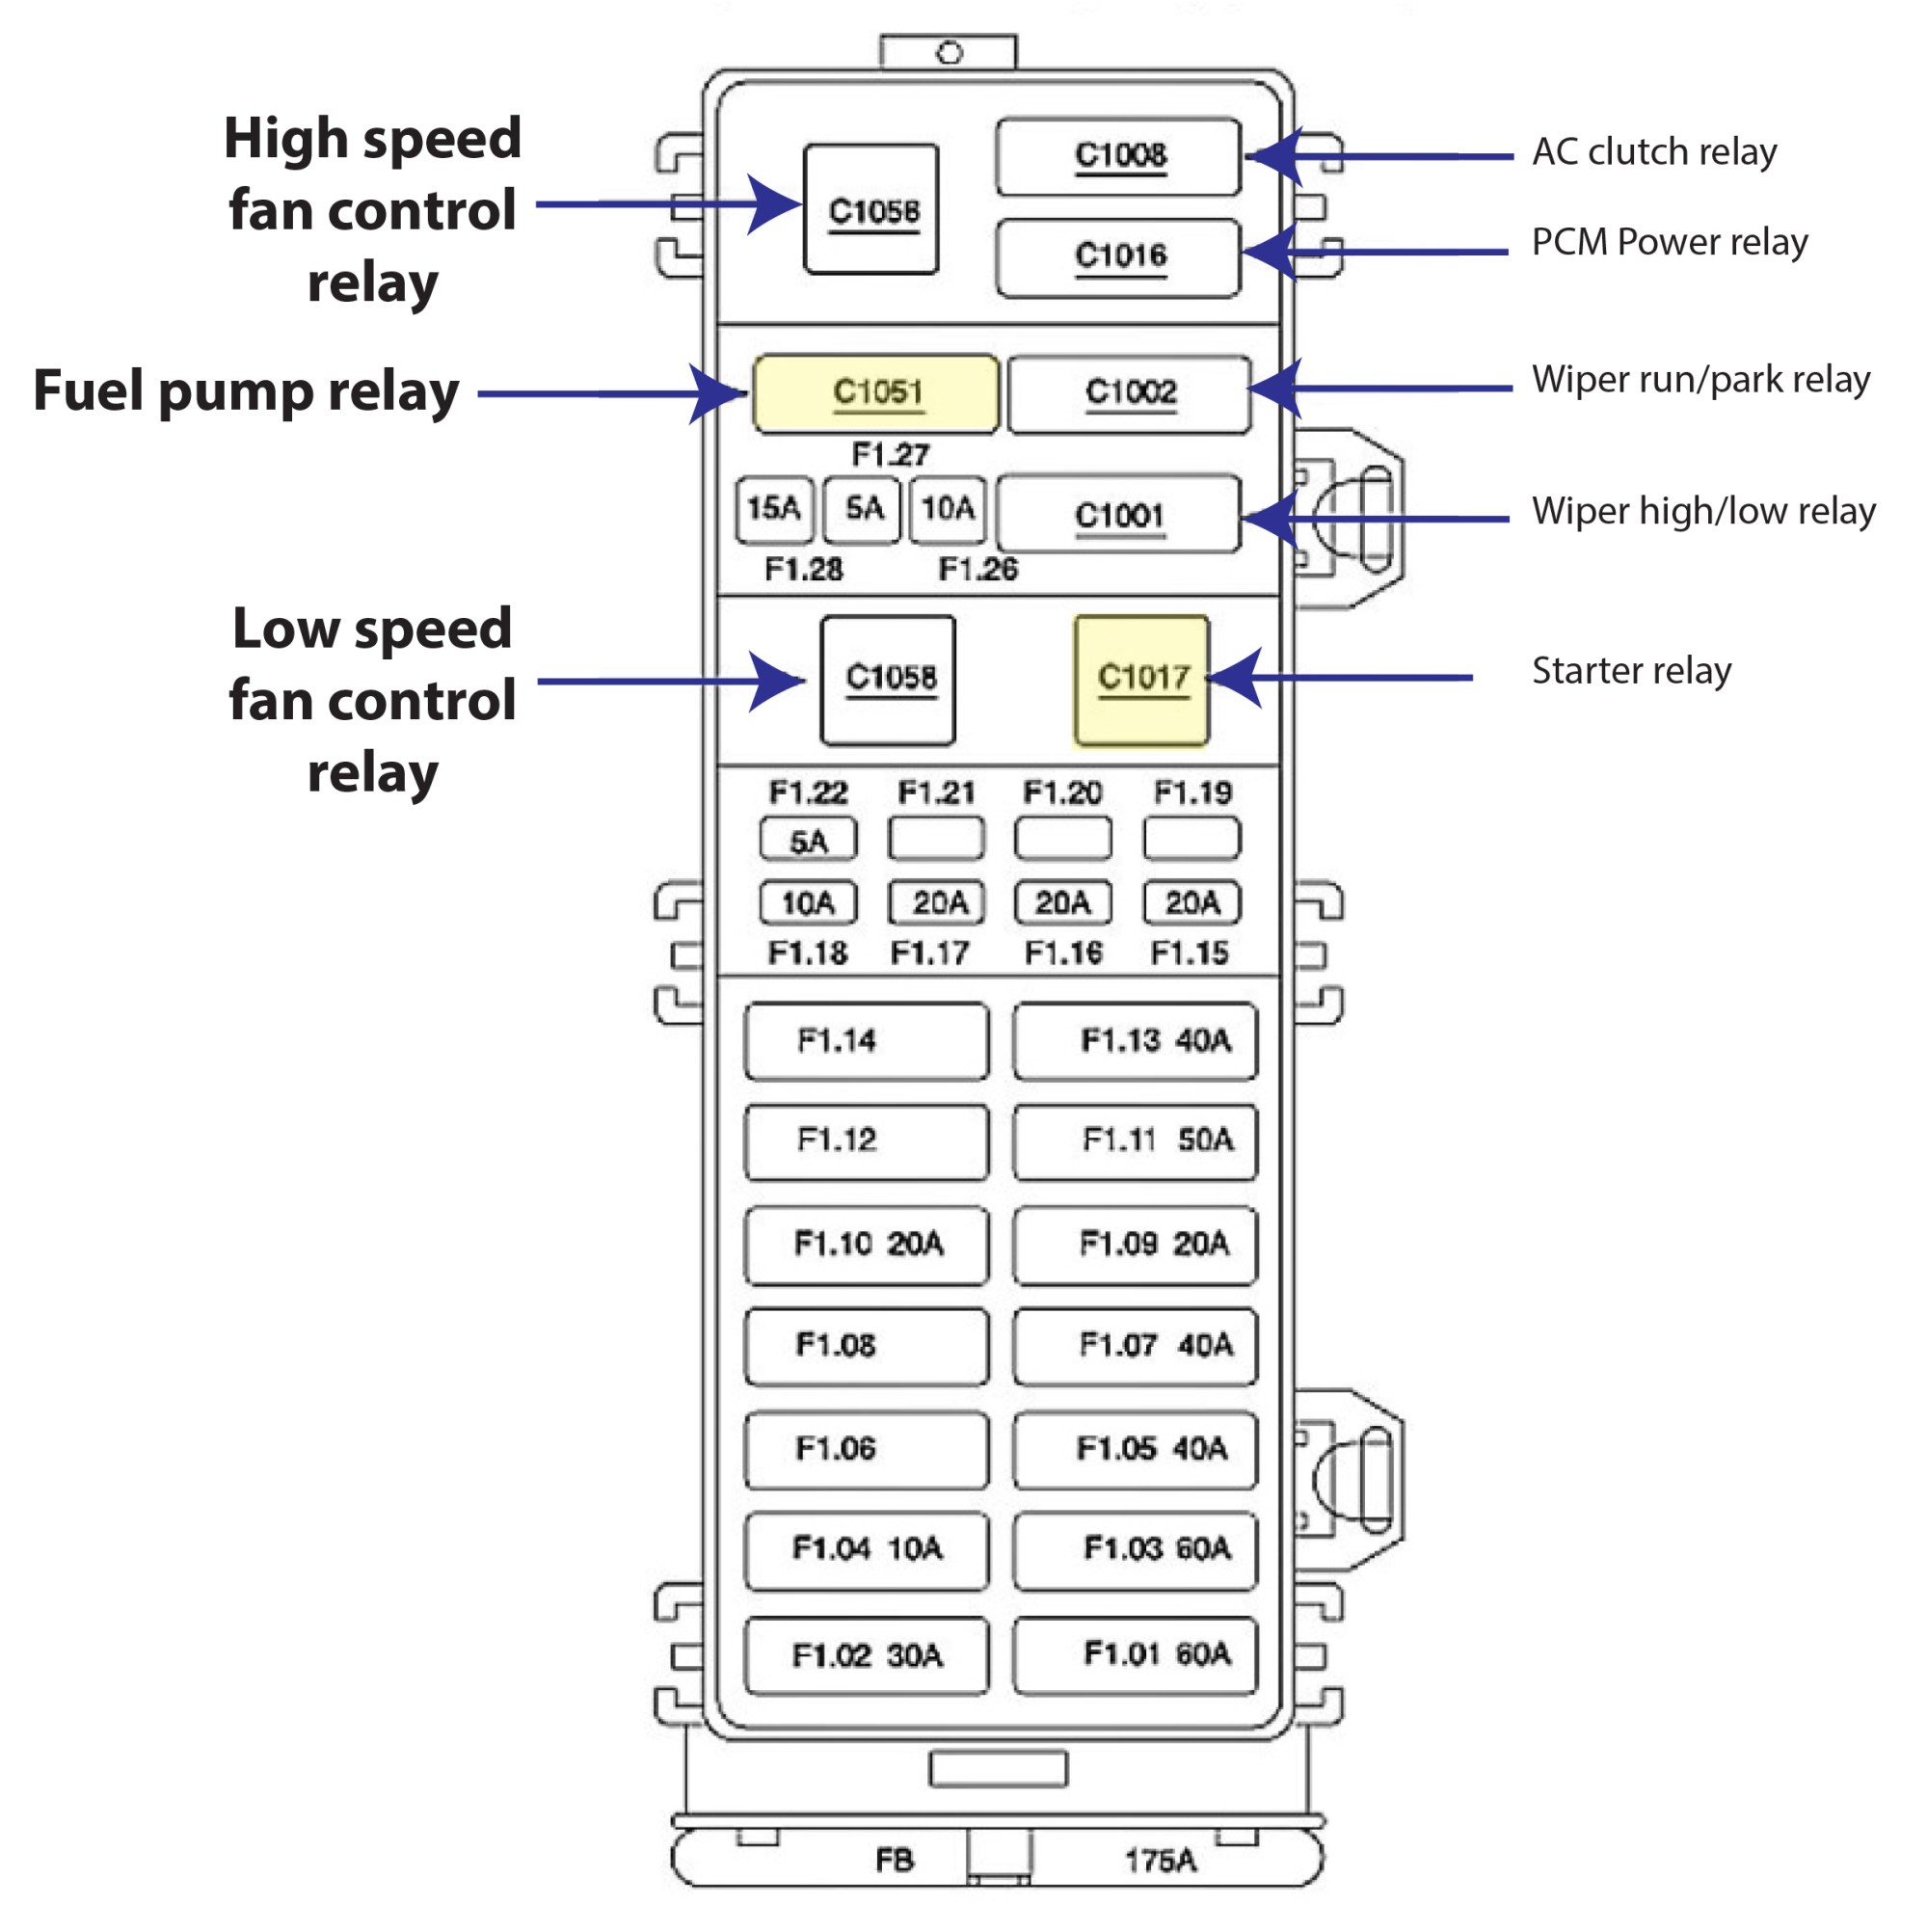 hight resolution of 2001 taurus se fuse diagram wiring diagram img 2008 ford taurus interior fuse box diagram 2008 ford taurus fuse diagram